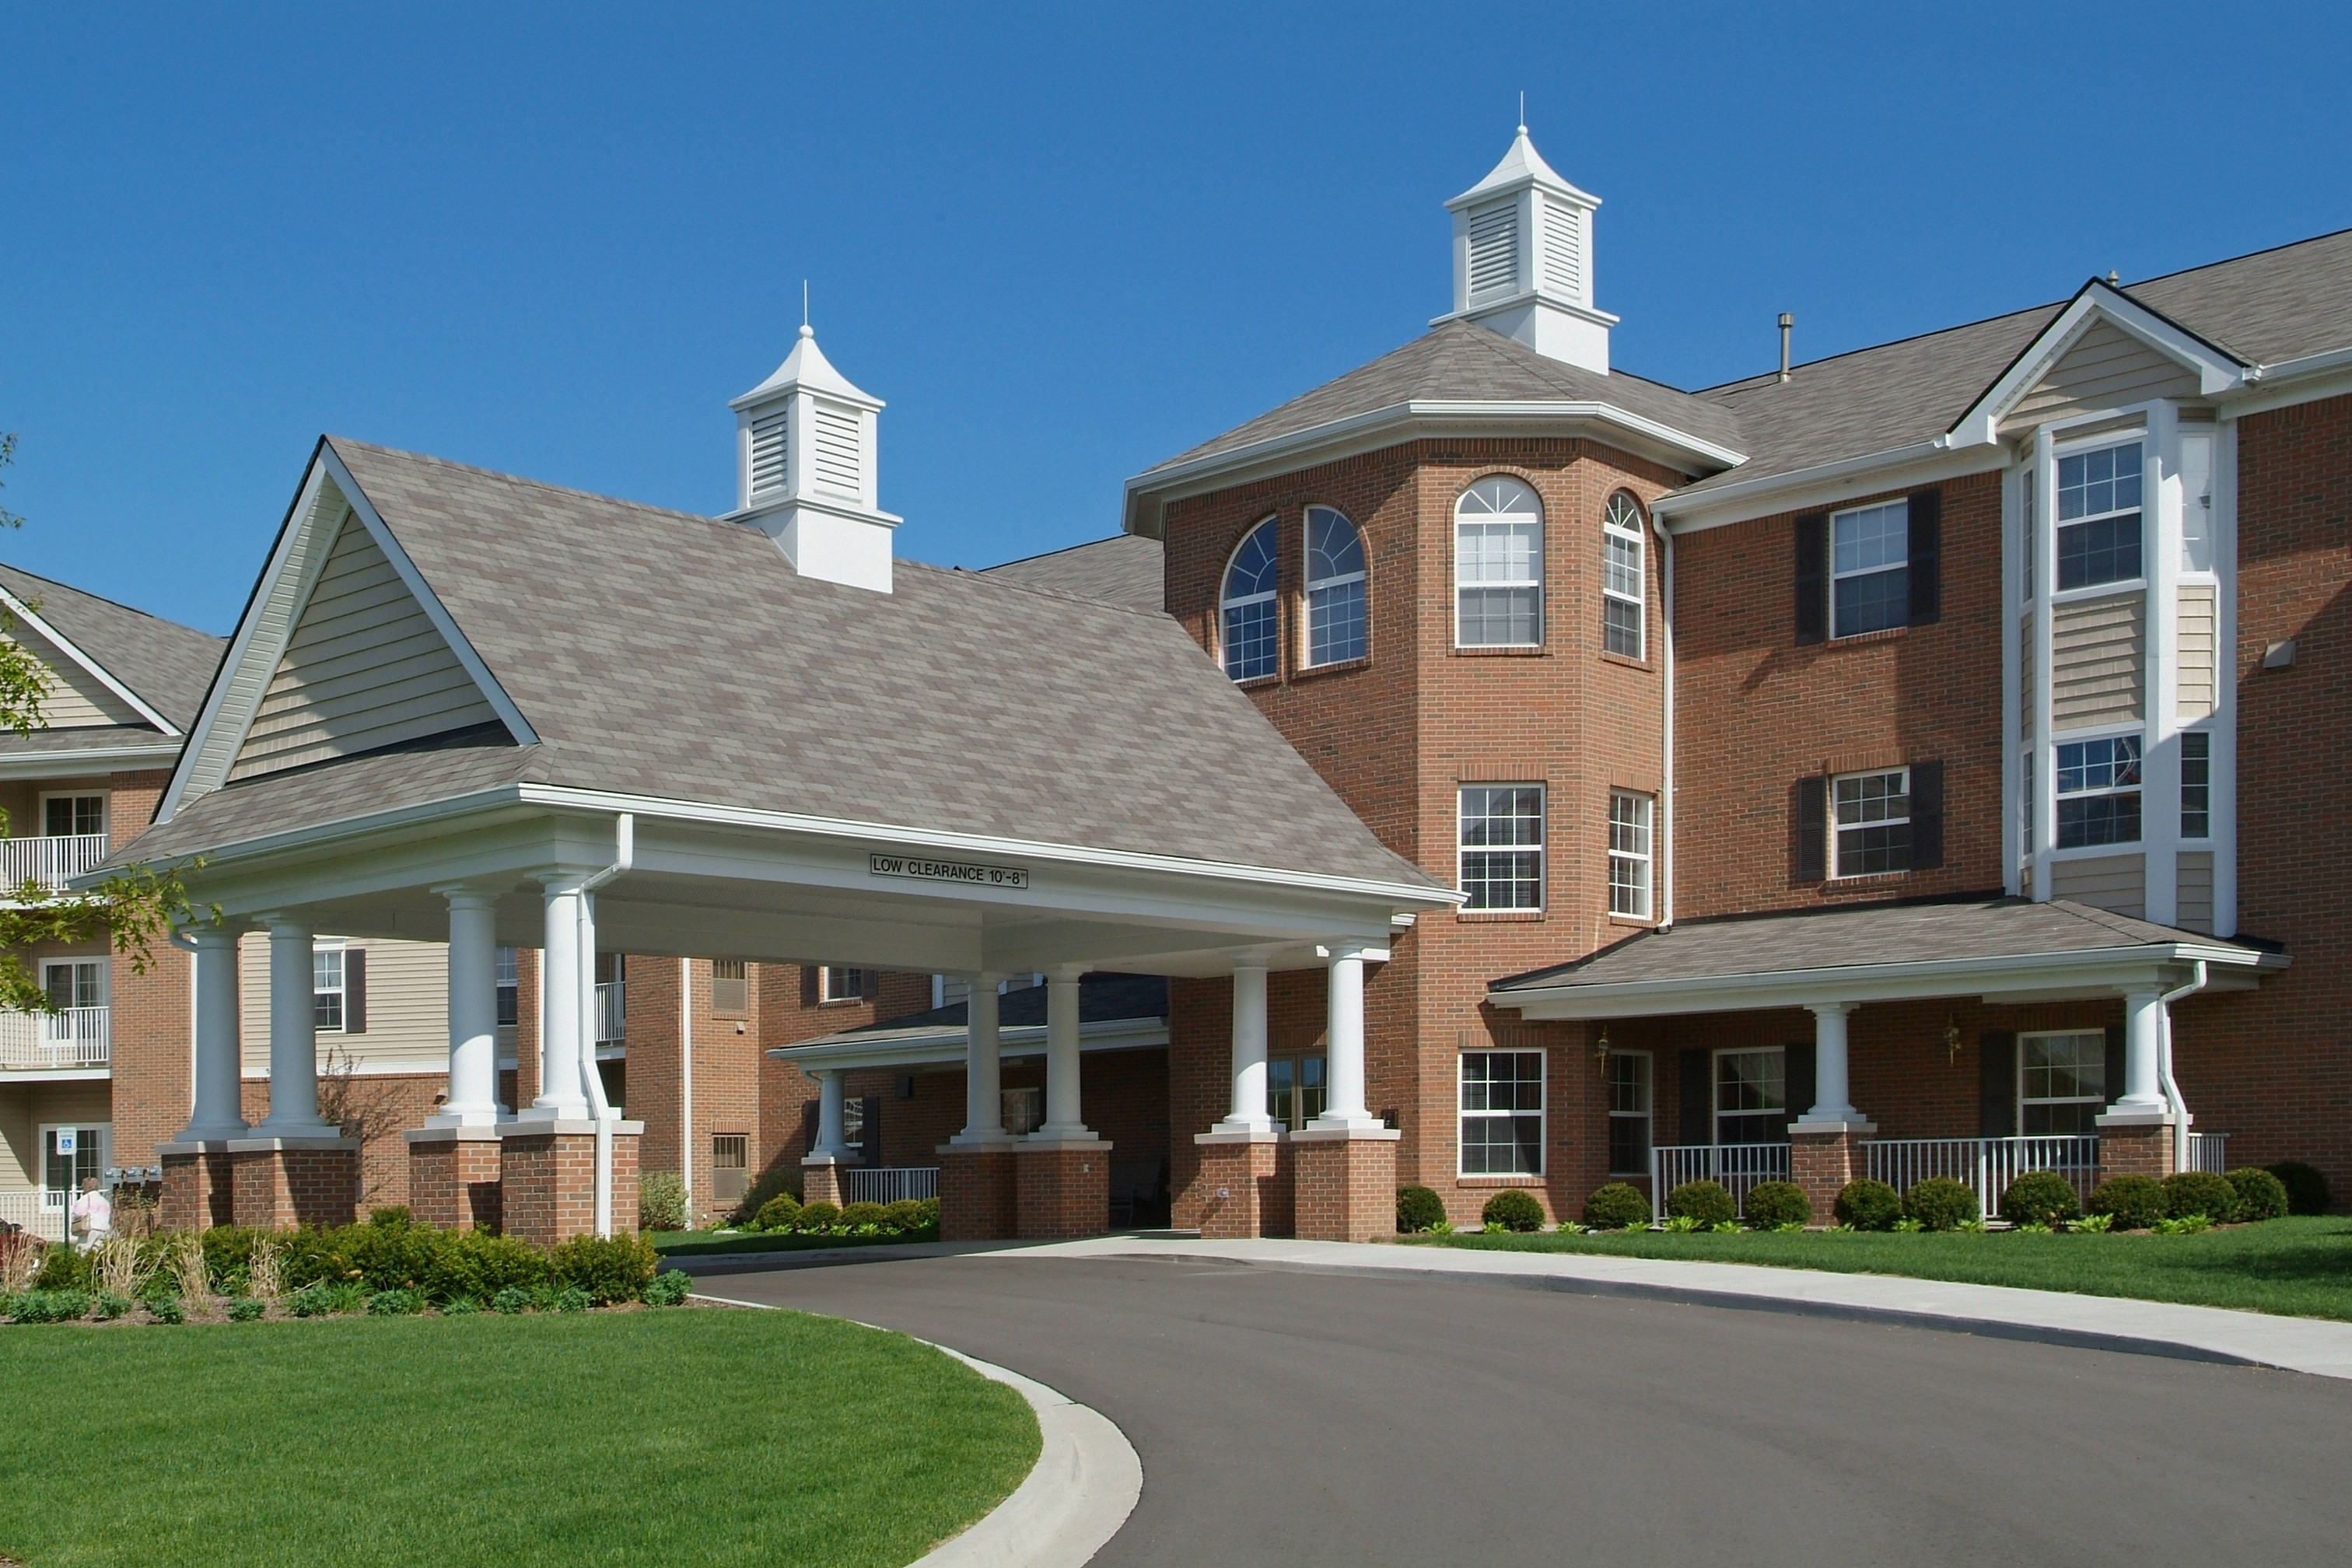 Apartments Near Lawrence Tech Elmhaven Manor - Senior Living for Lawrence Technological University Students in Southfield, MI